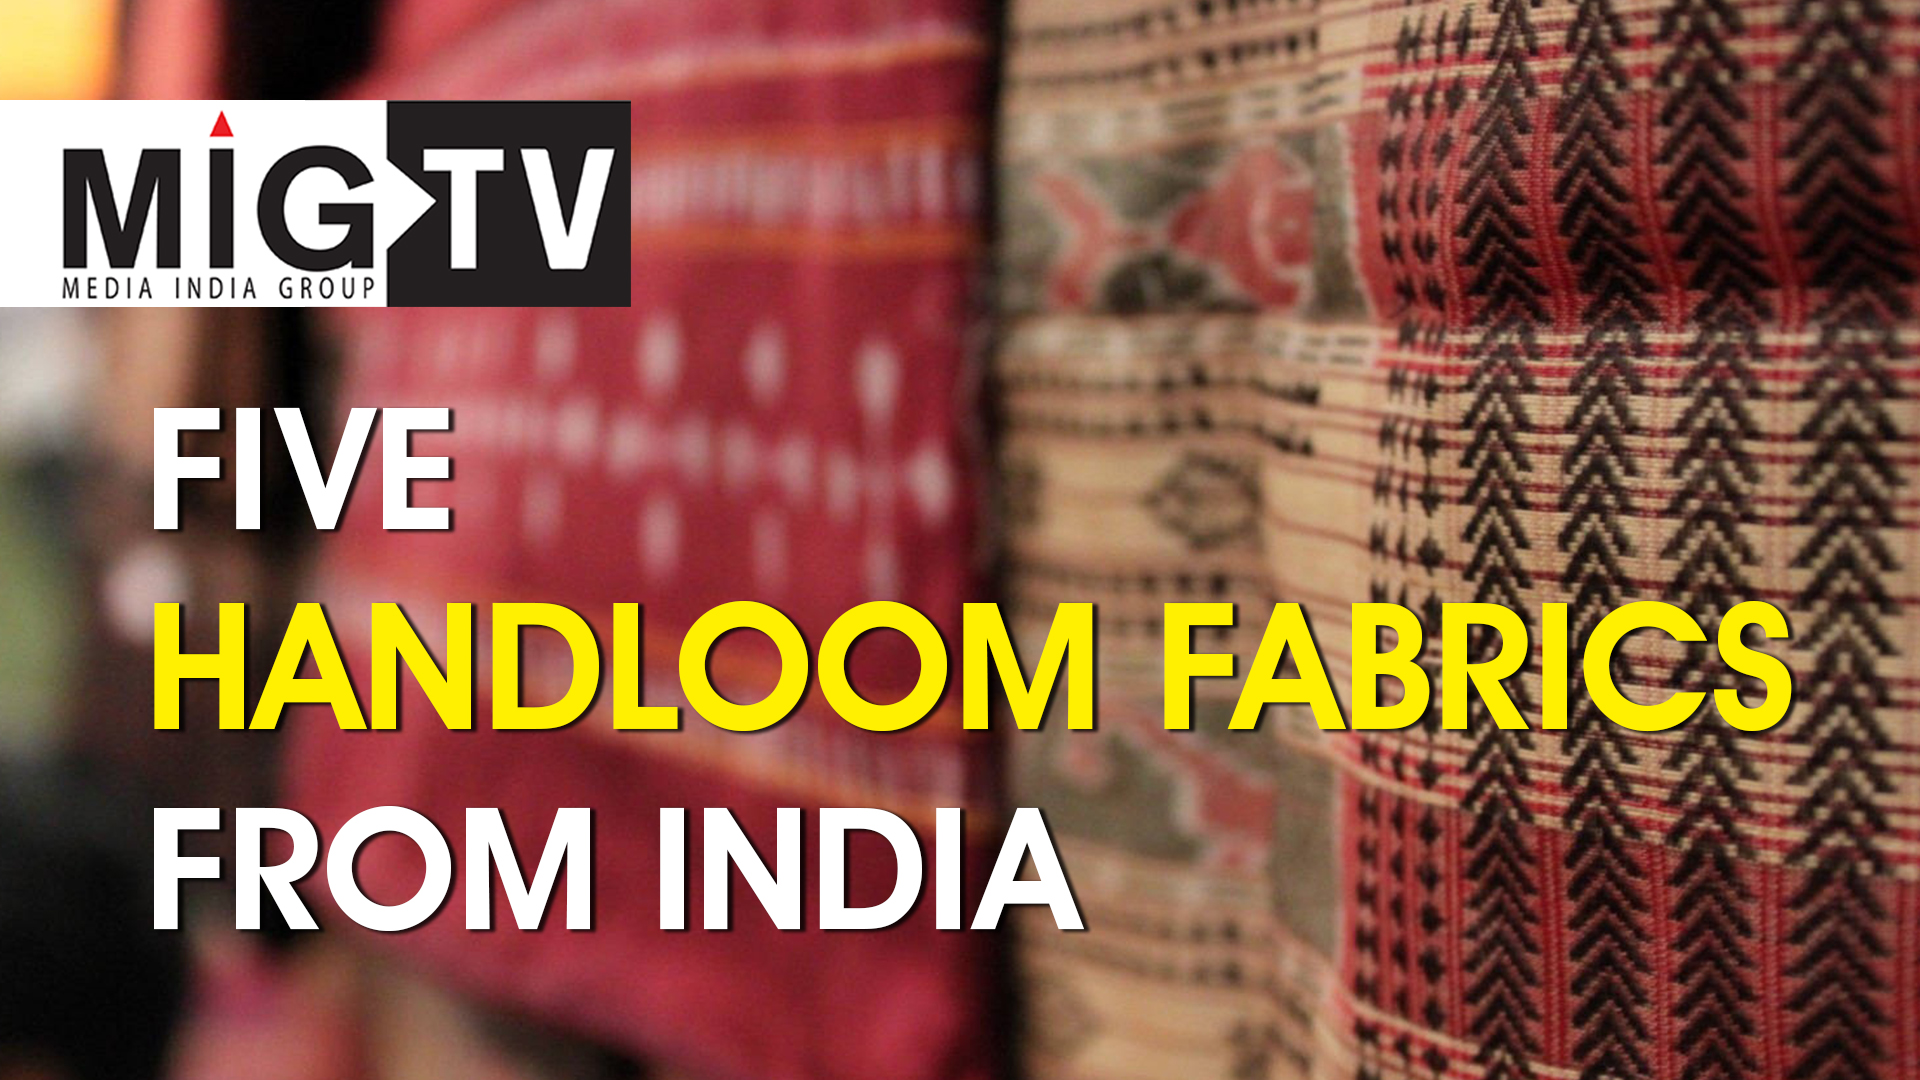 Five Handloom Fabrics from India